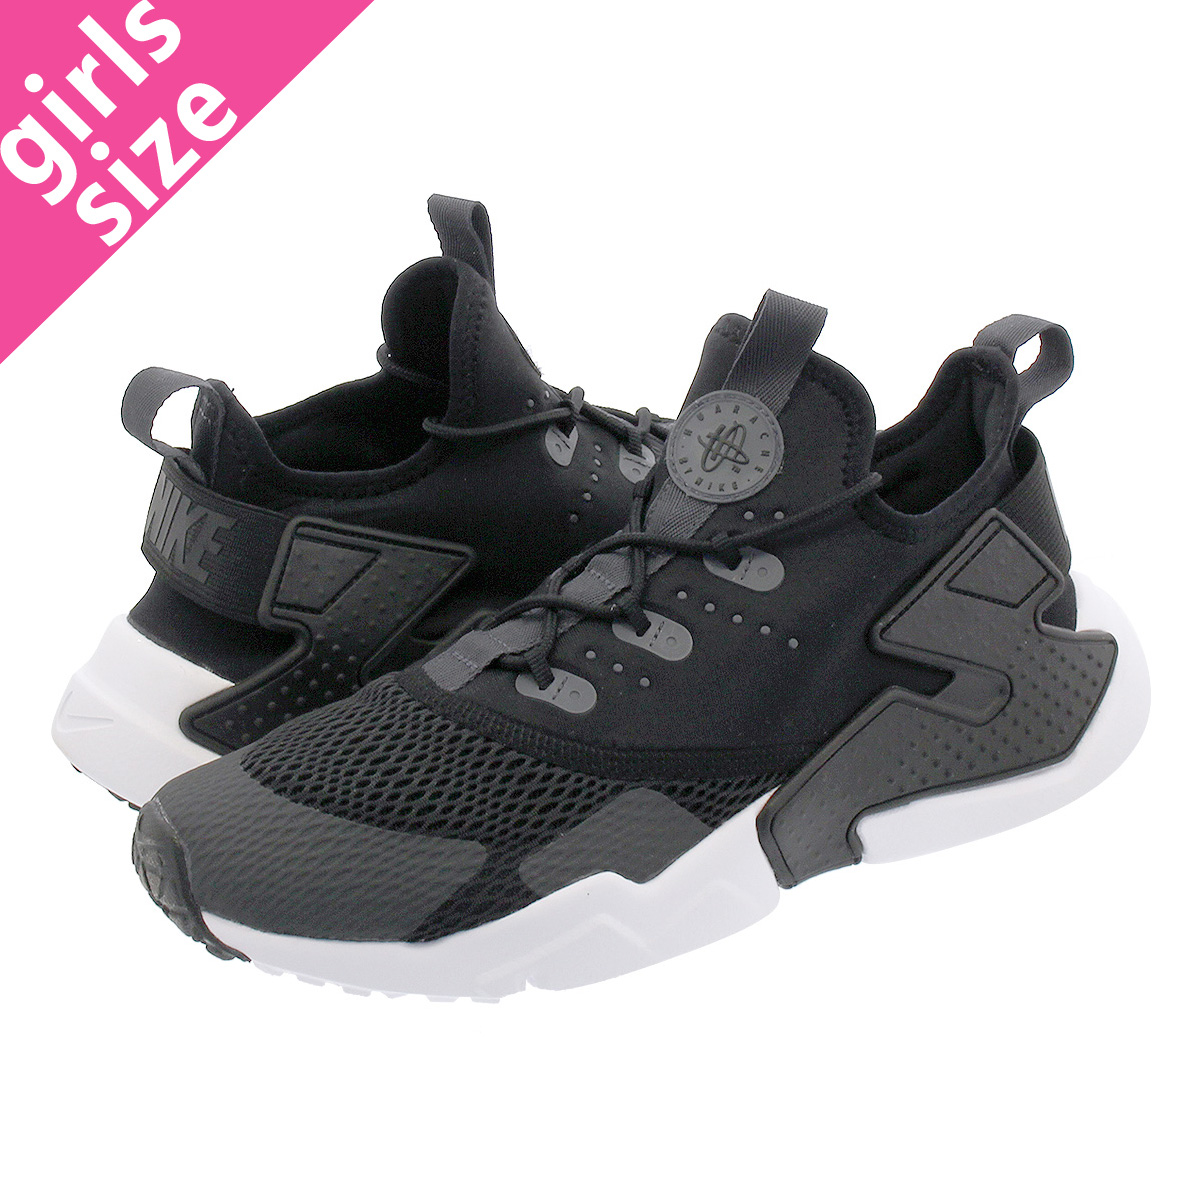 78d7827f88 NIKE AIR HUARACHE DRIFT GS ナイキハラチドリフト GS BLACK/ANTHRACITE/ANTHRACITE  943,344- ...